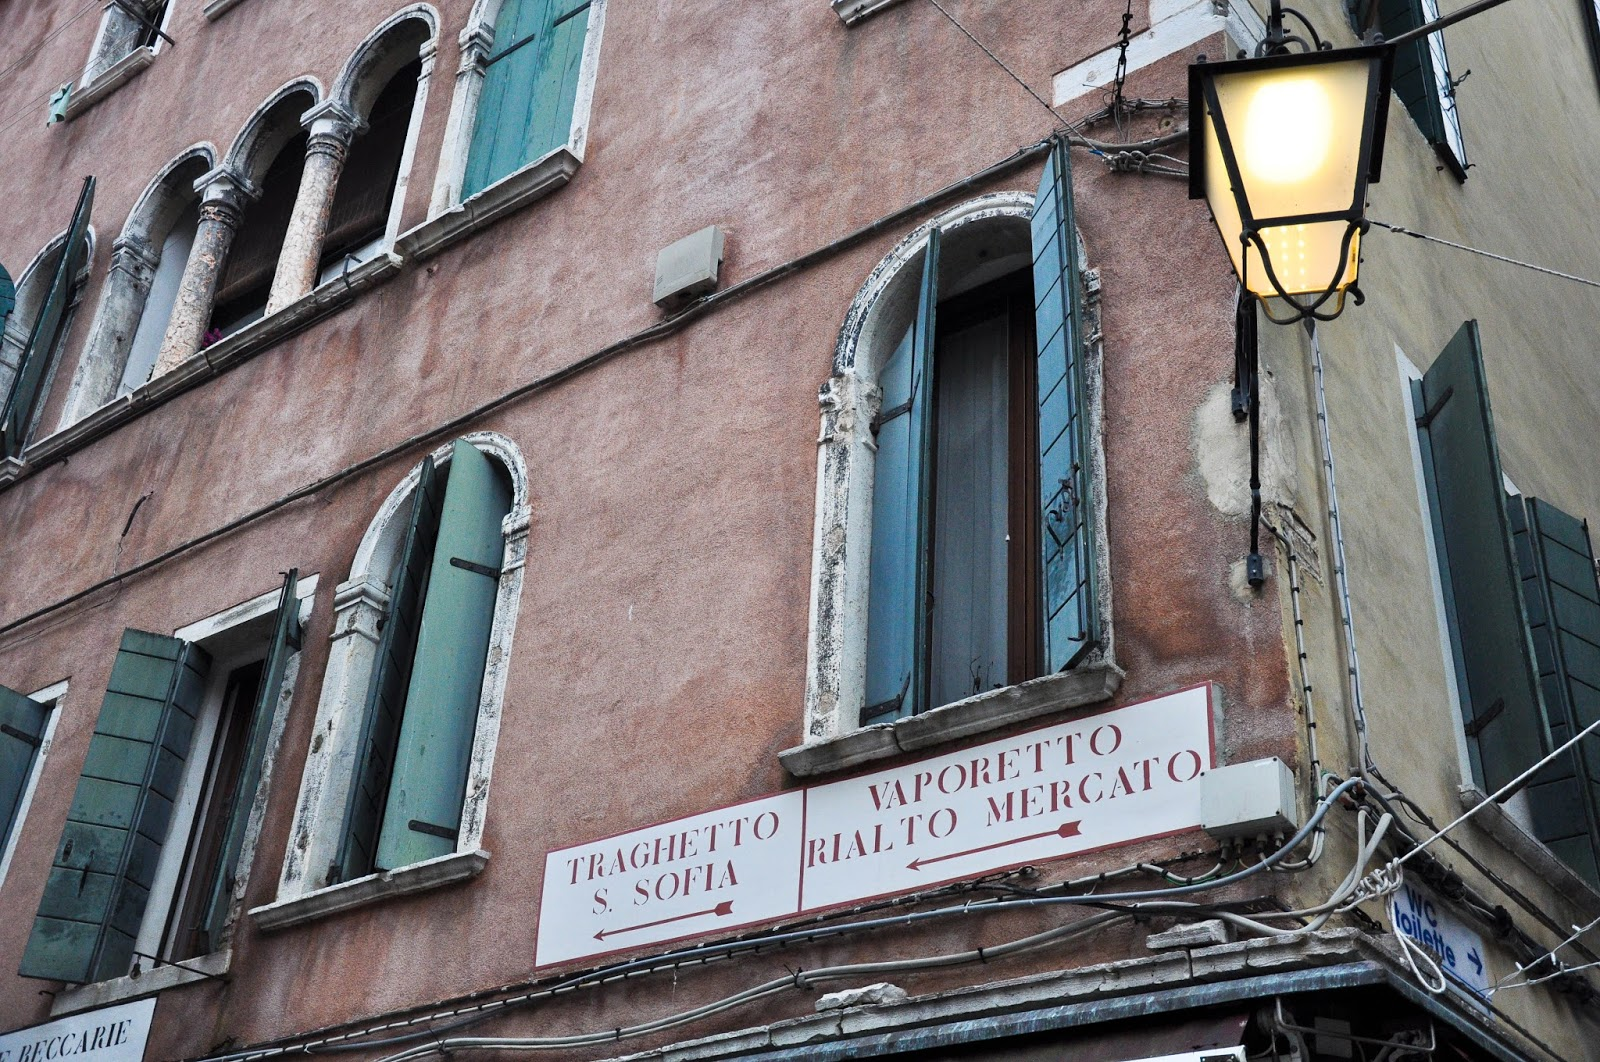 Sign pointing to a traghetto stop, Venice, Italy